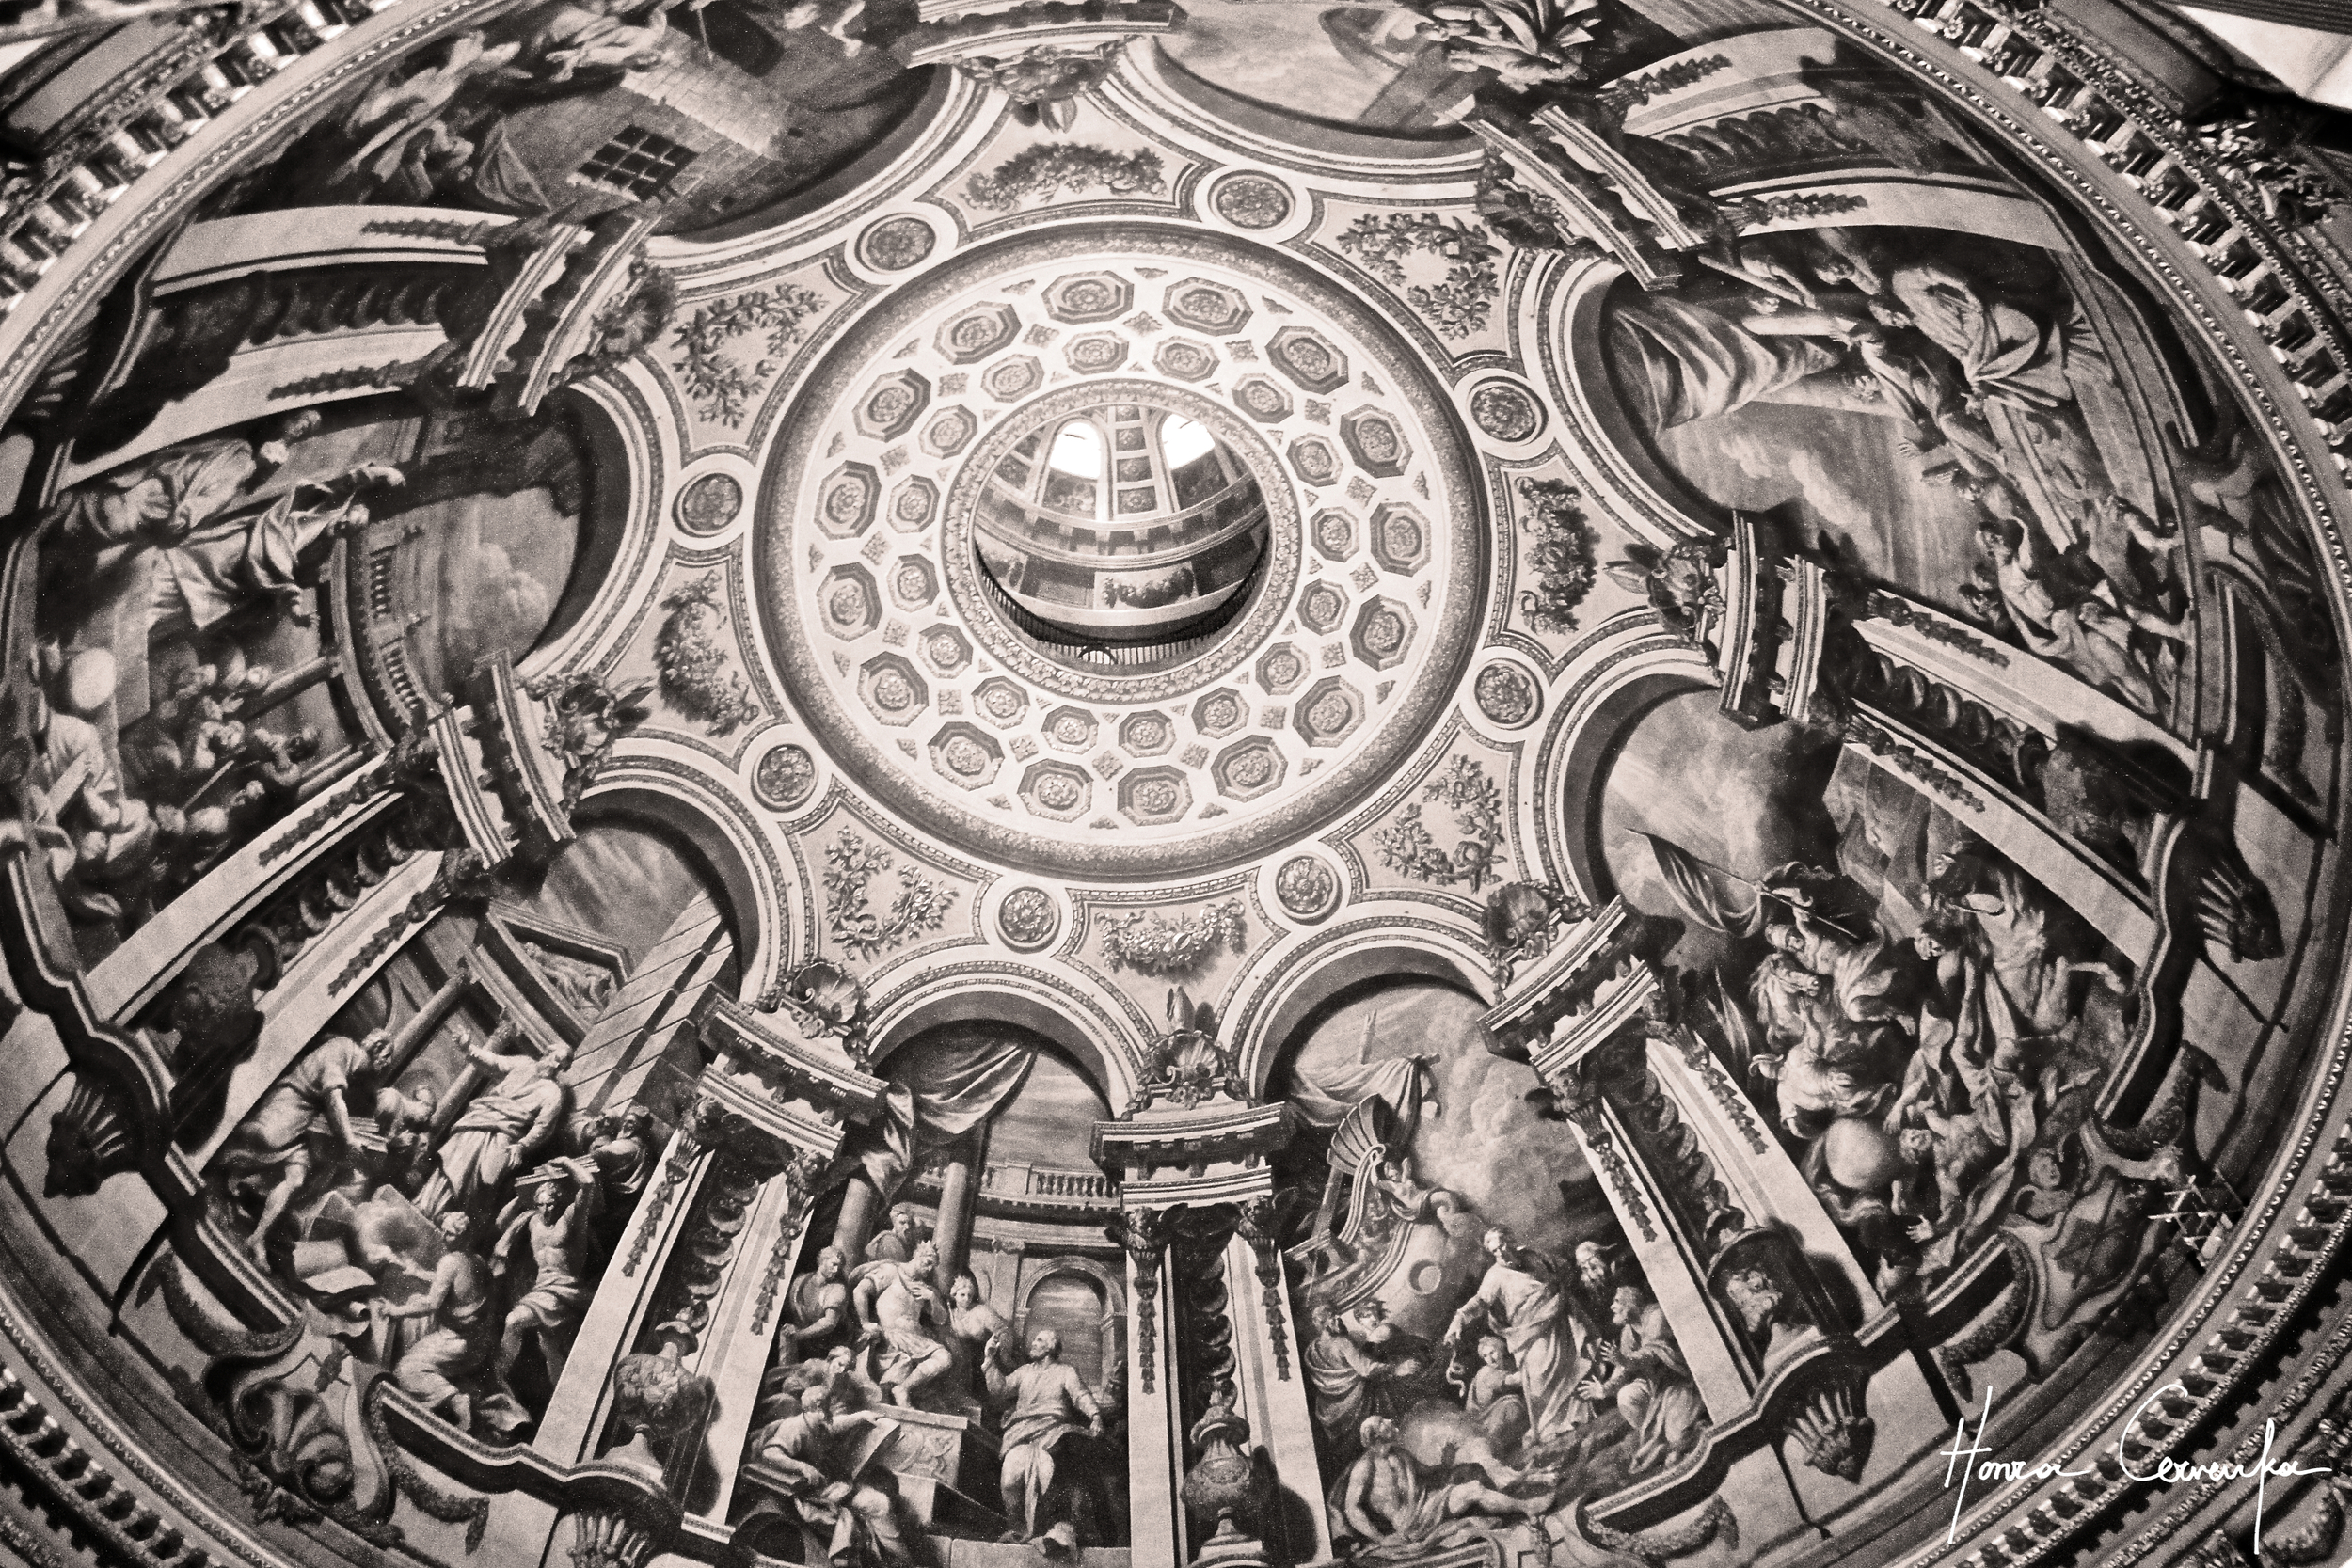 Saint Paul's Cathedral Dome, London, England, 2014